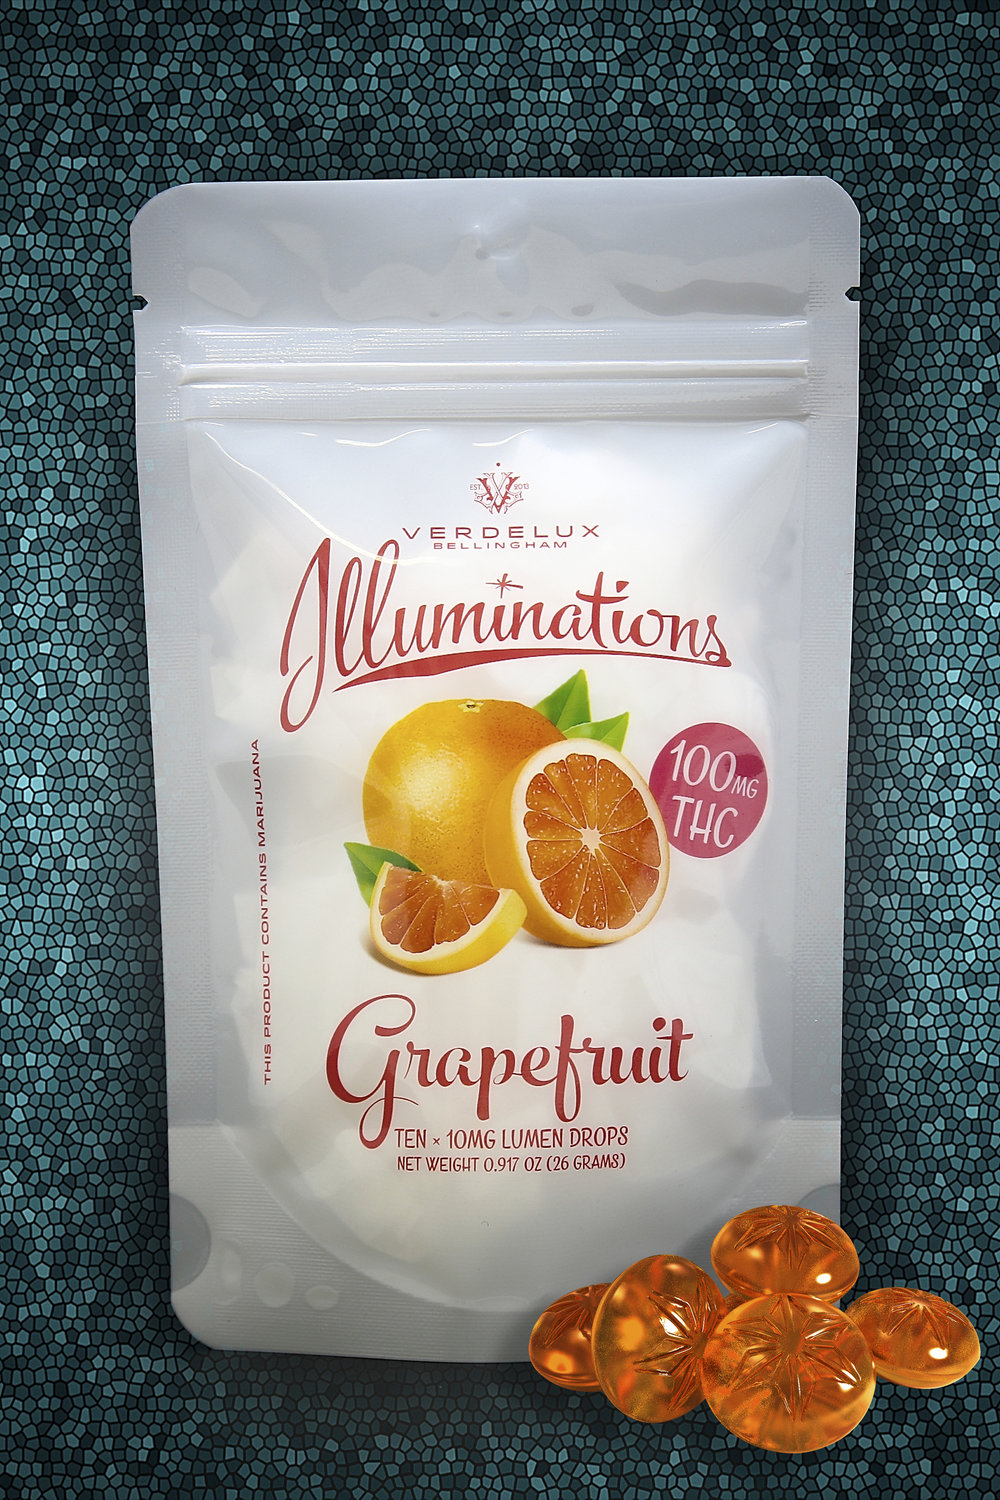 Grapefruit Illuminations